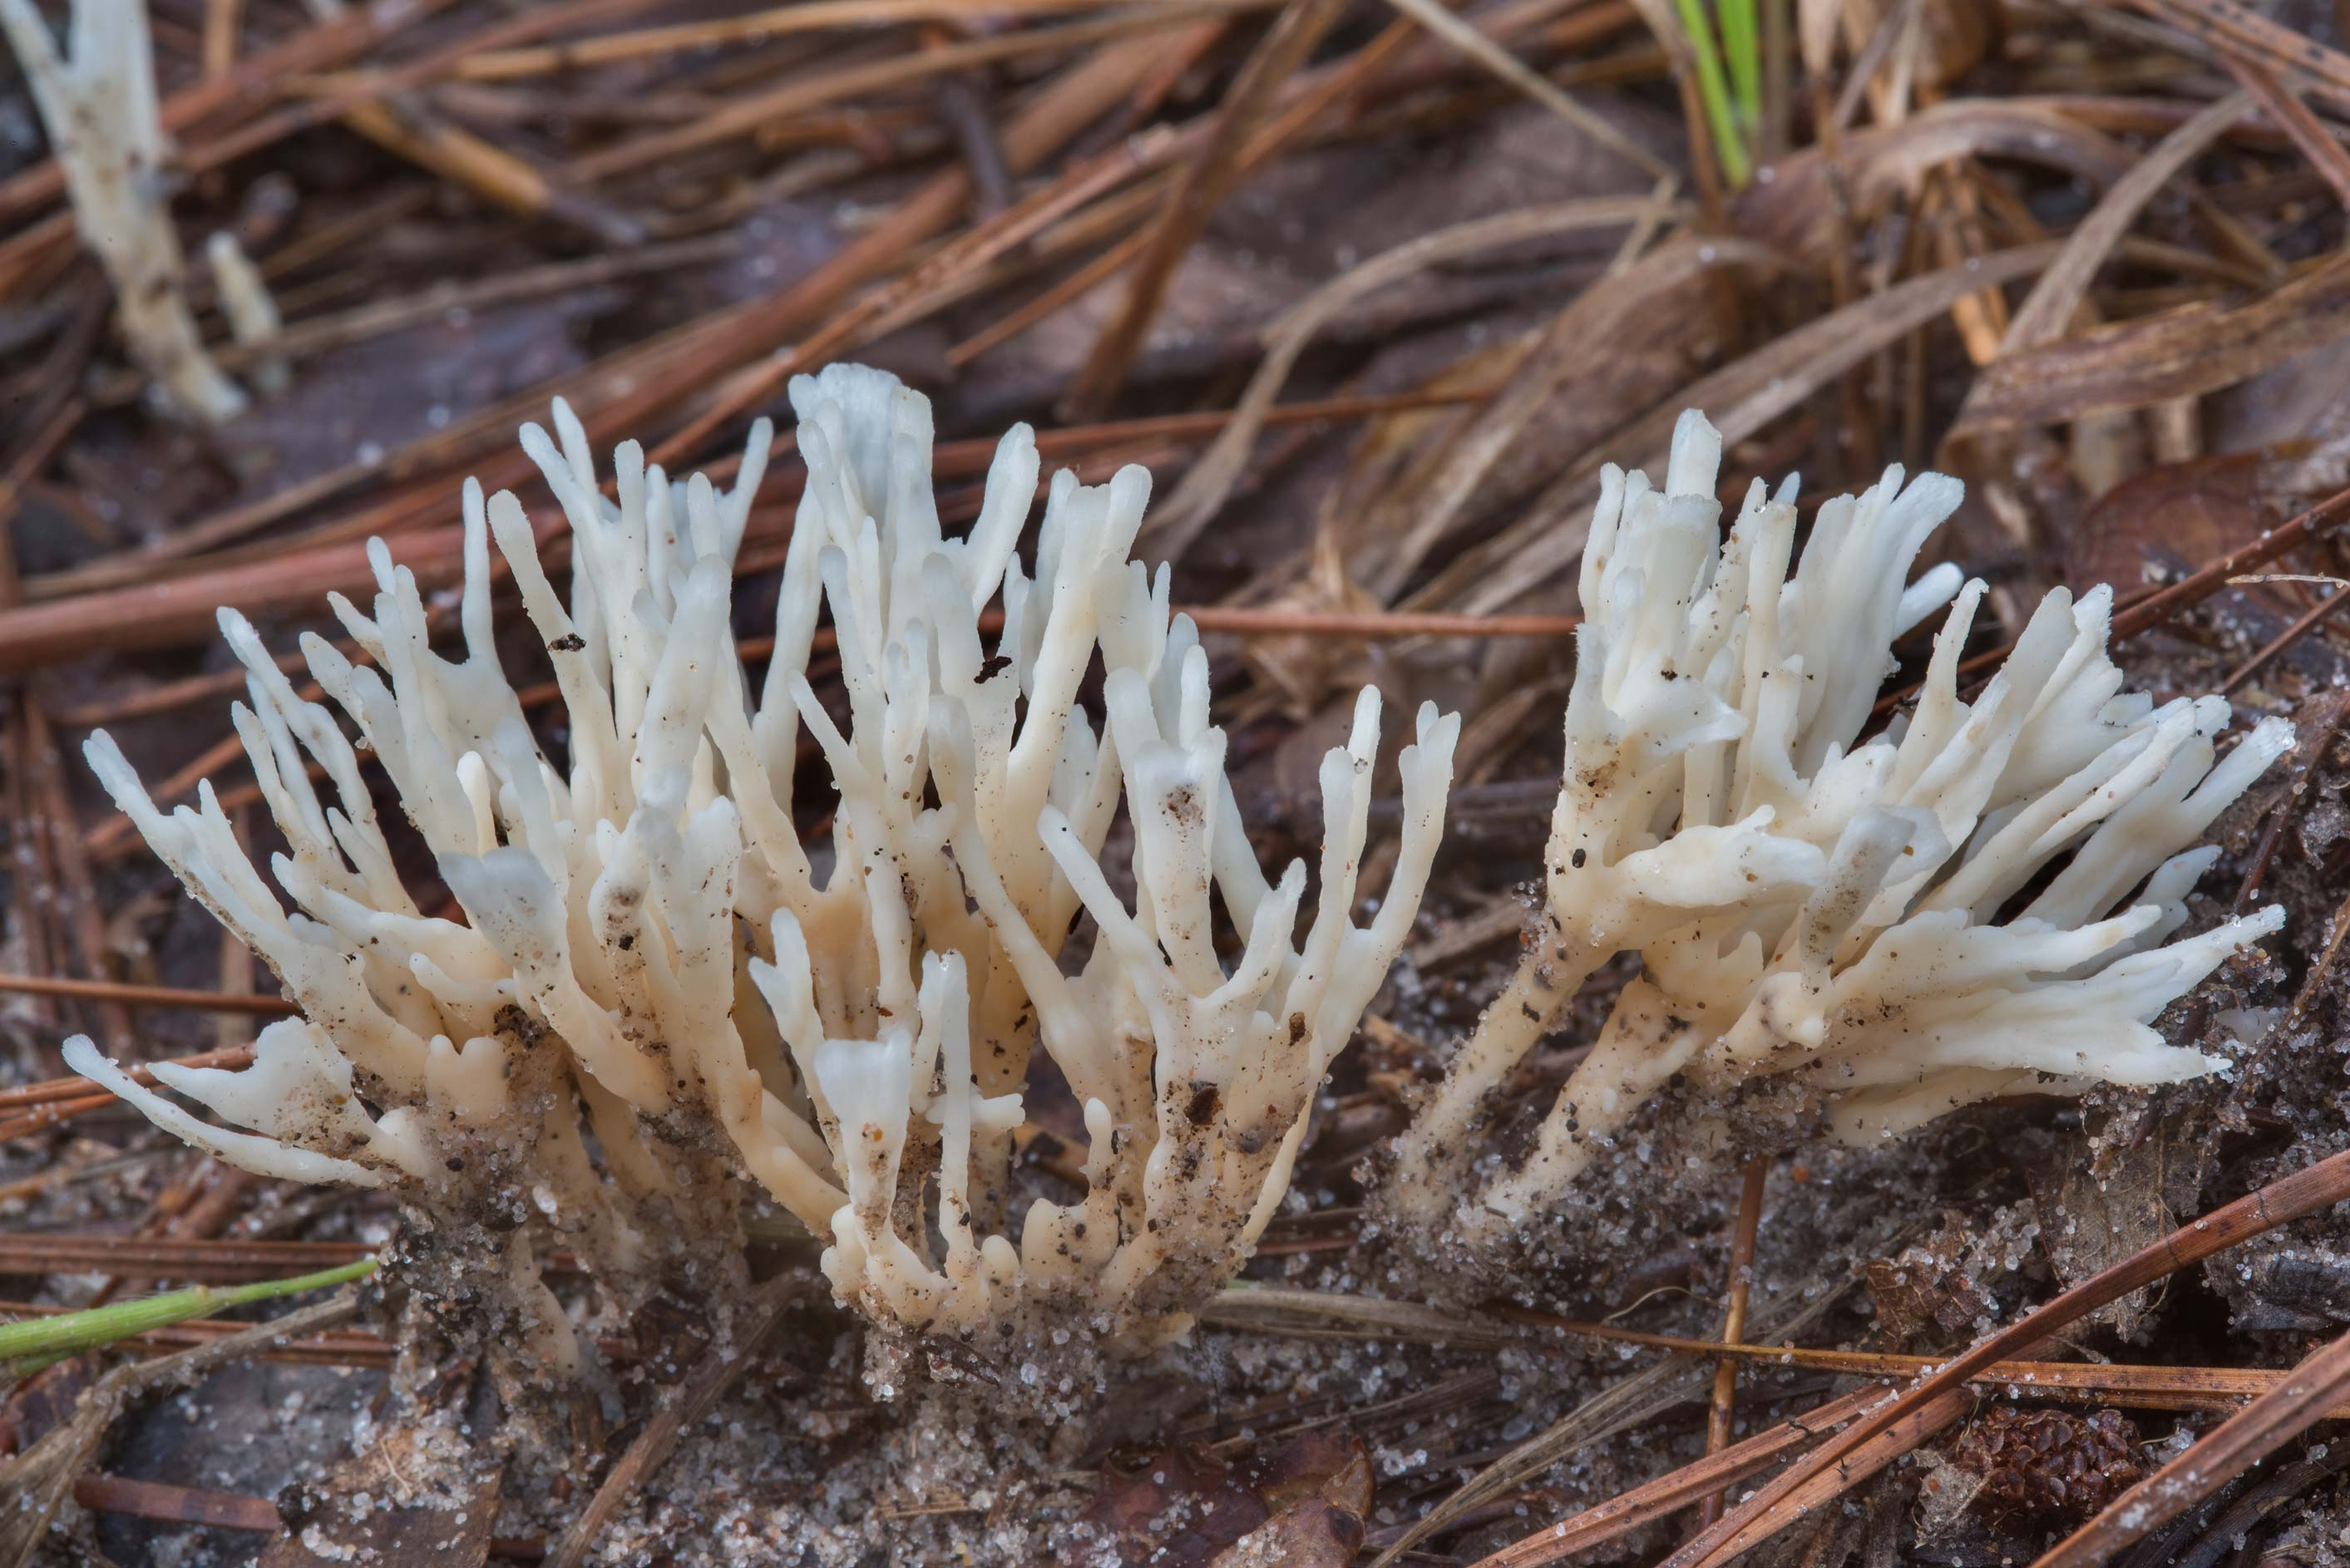 Coral like mushrooms Tremellodendropsis...National Forest. Richards, Texas